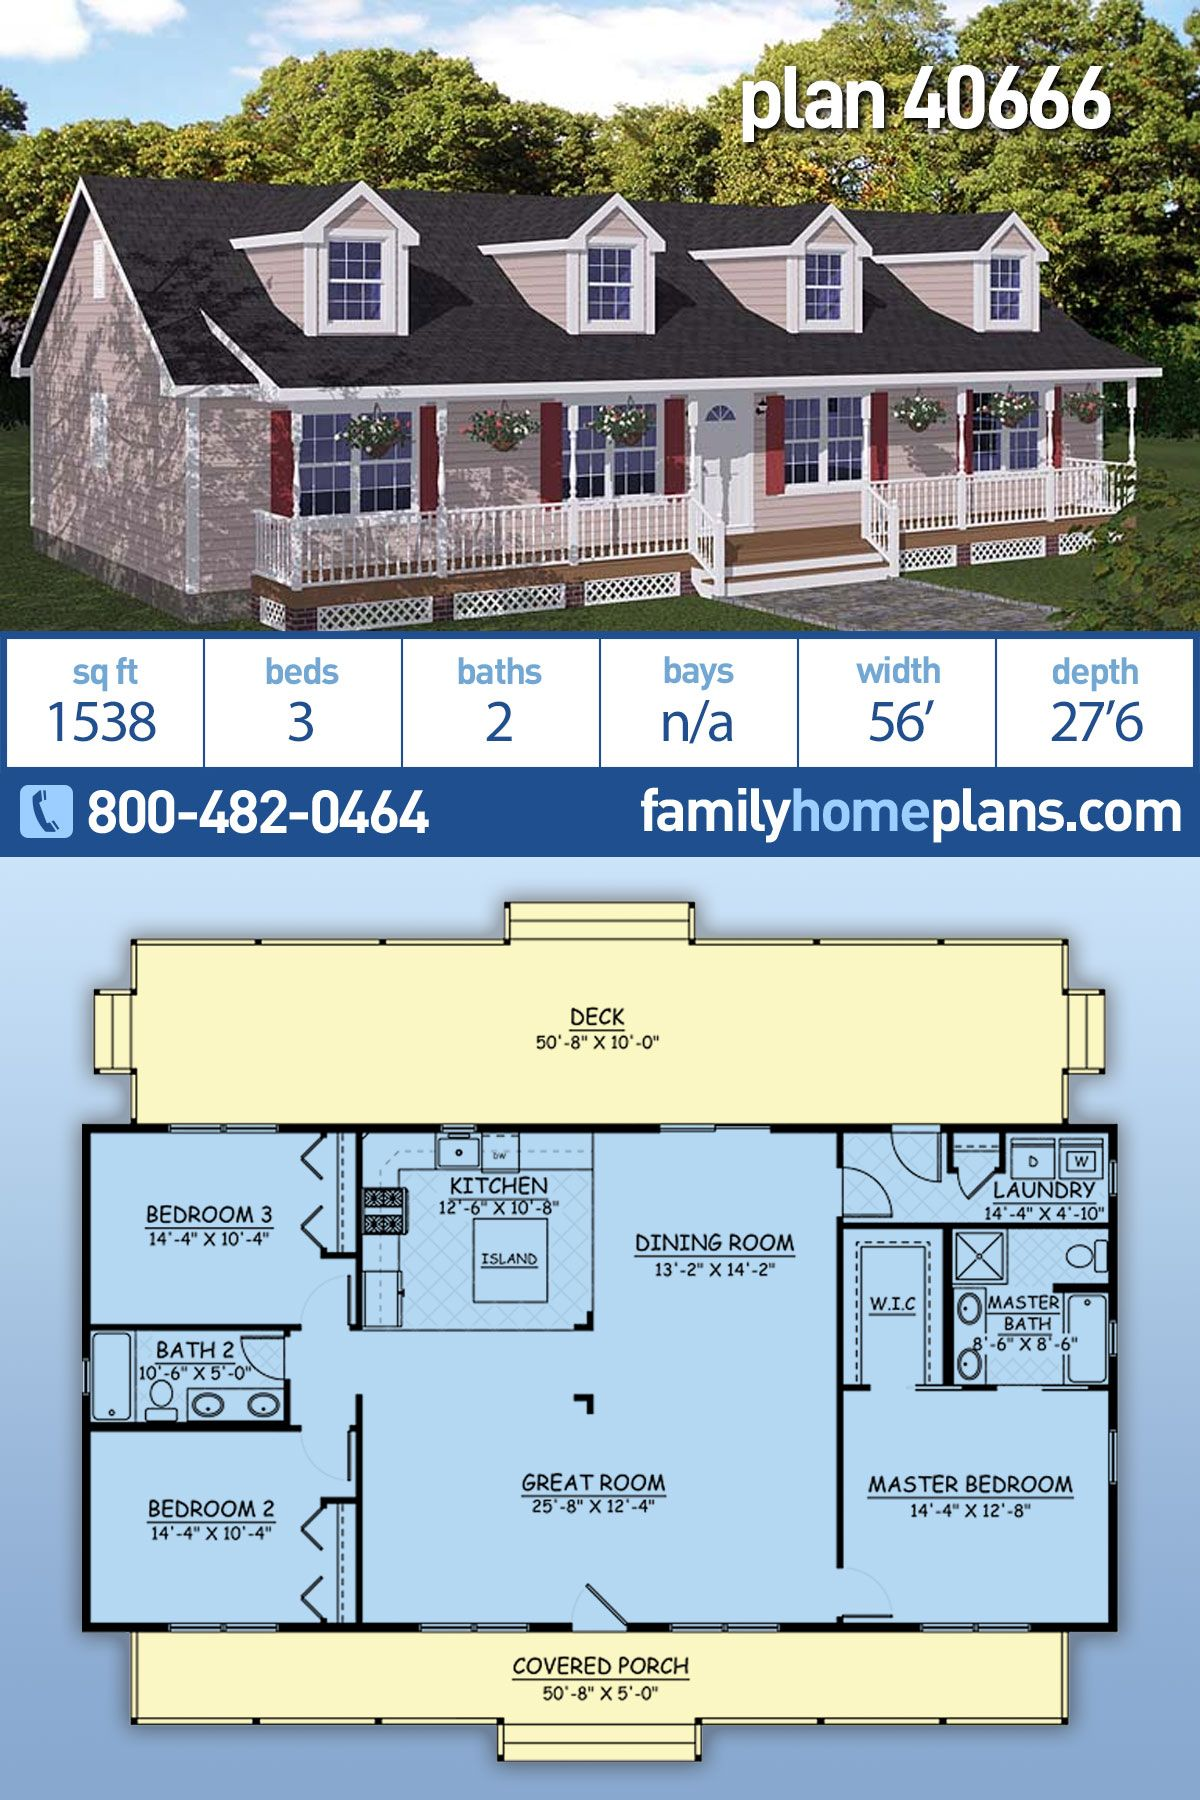 Southern Style House Plan 40666 With 3 Bed 2 Bath Affordable House Design Affordable House Plans Family House Plans